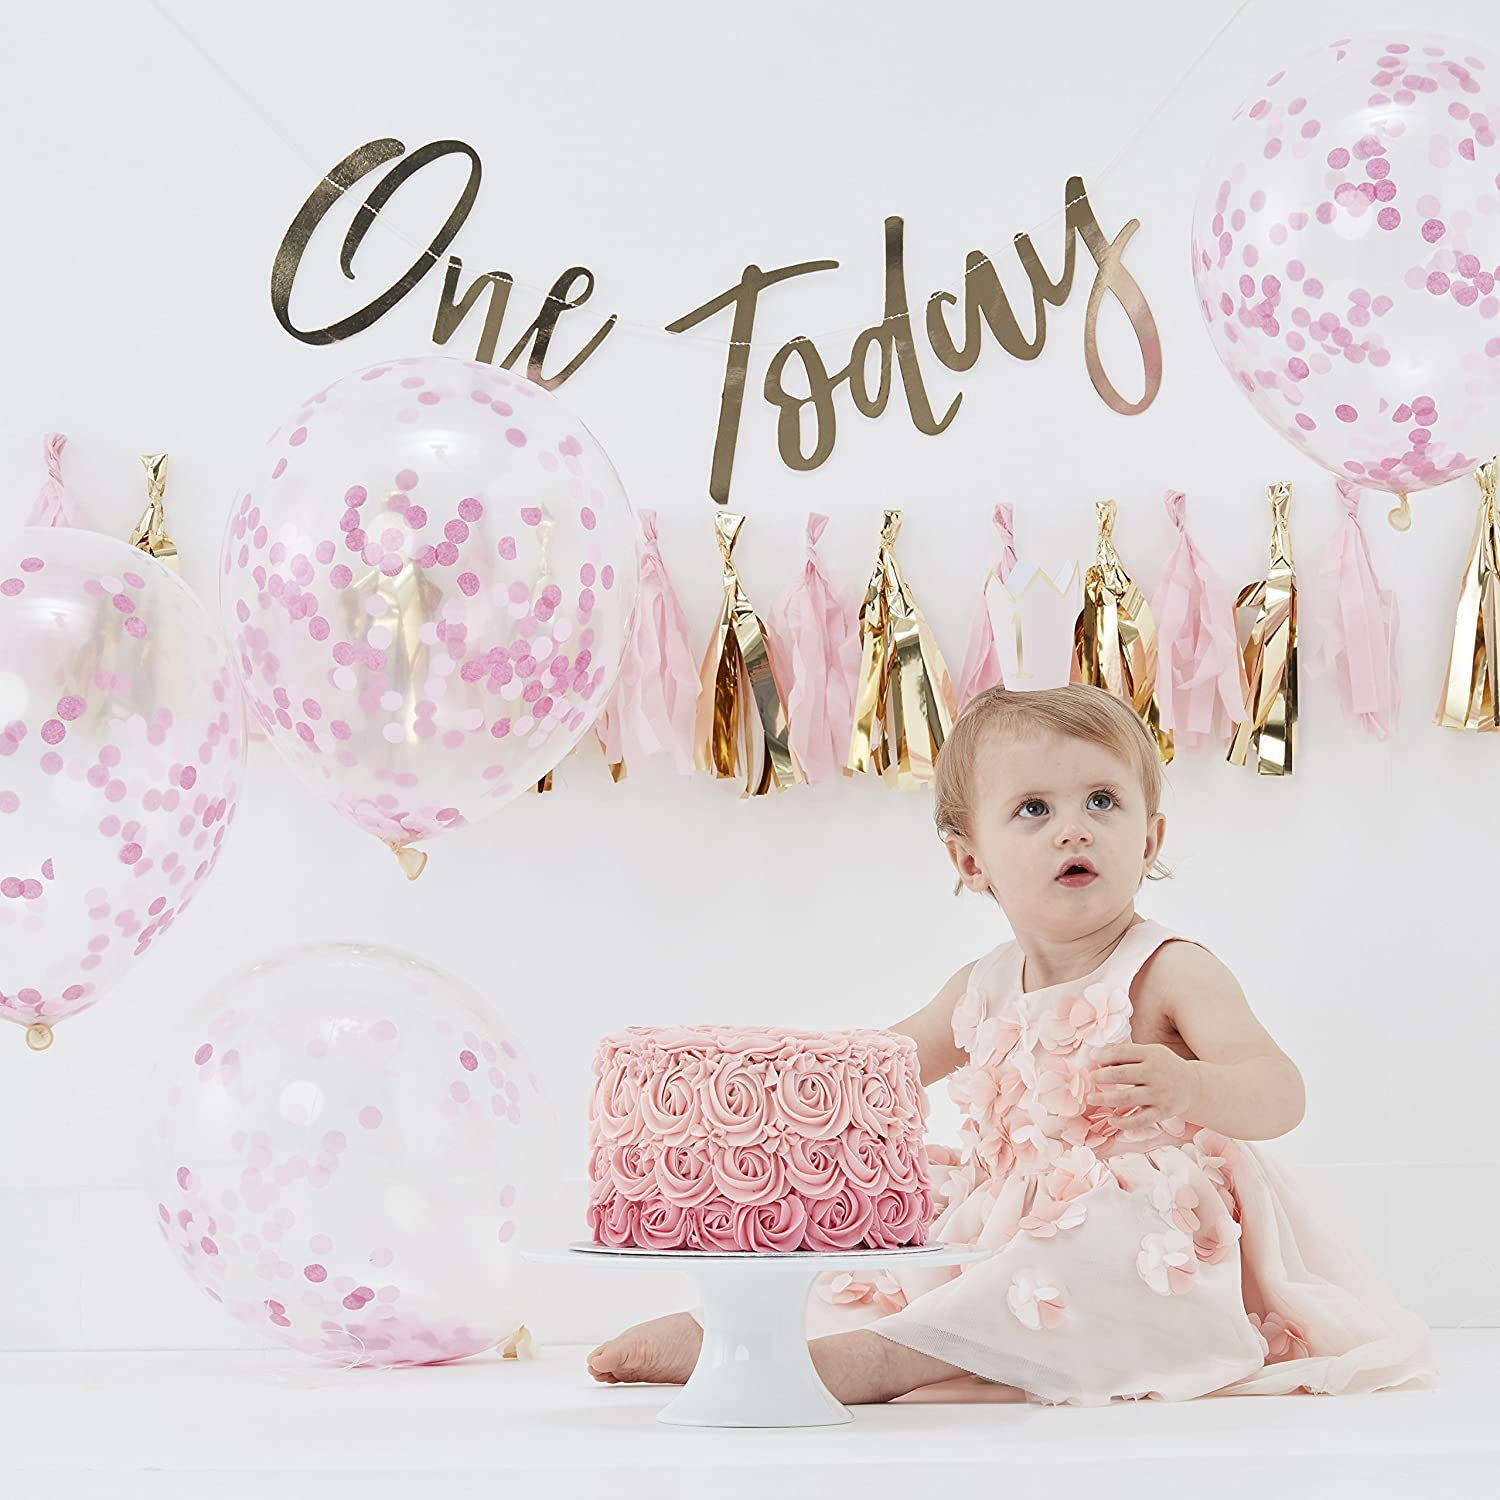 Marvelous Ginger Ray Pink Gold Girls Cake Smash Kit First Birthday Party Funny Birthday Cards Online Barepcheapnameinfo